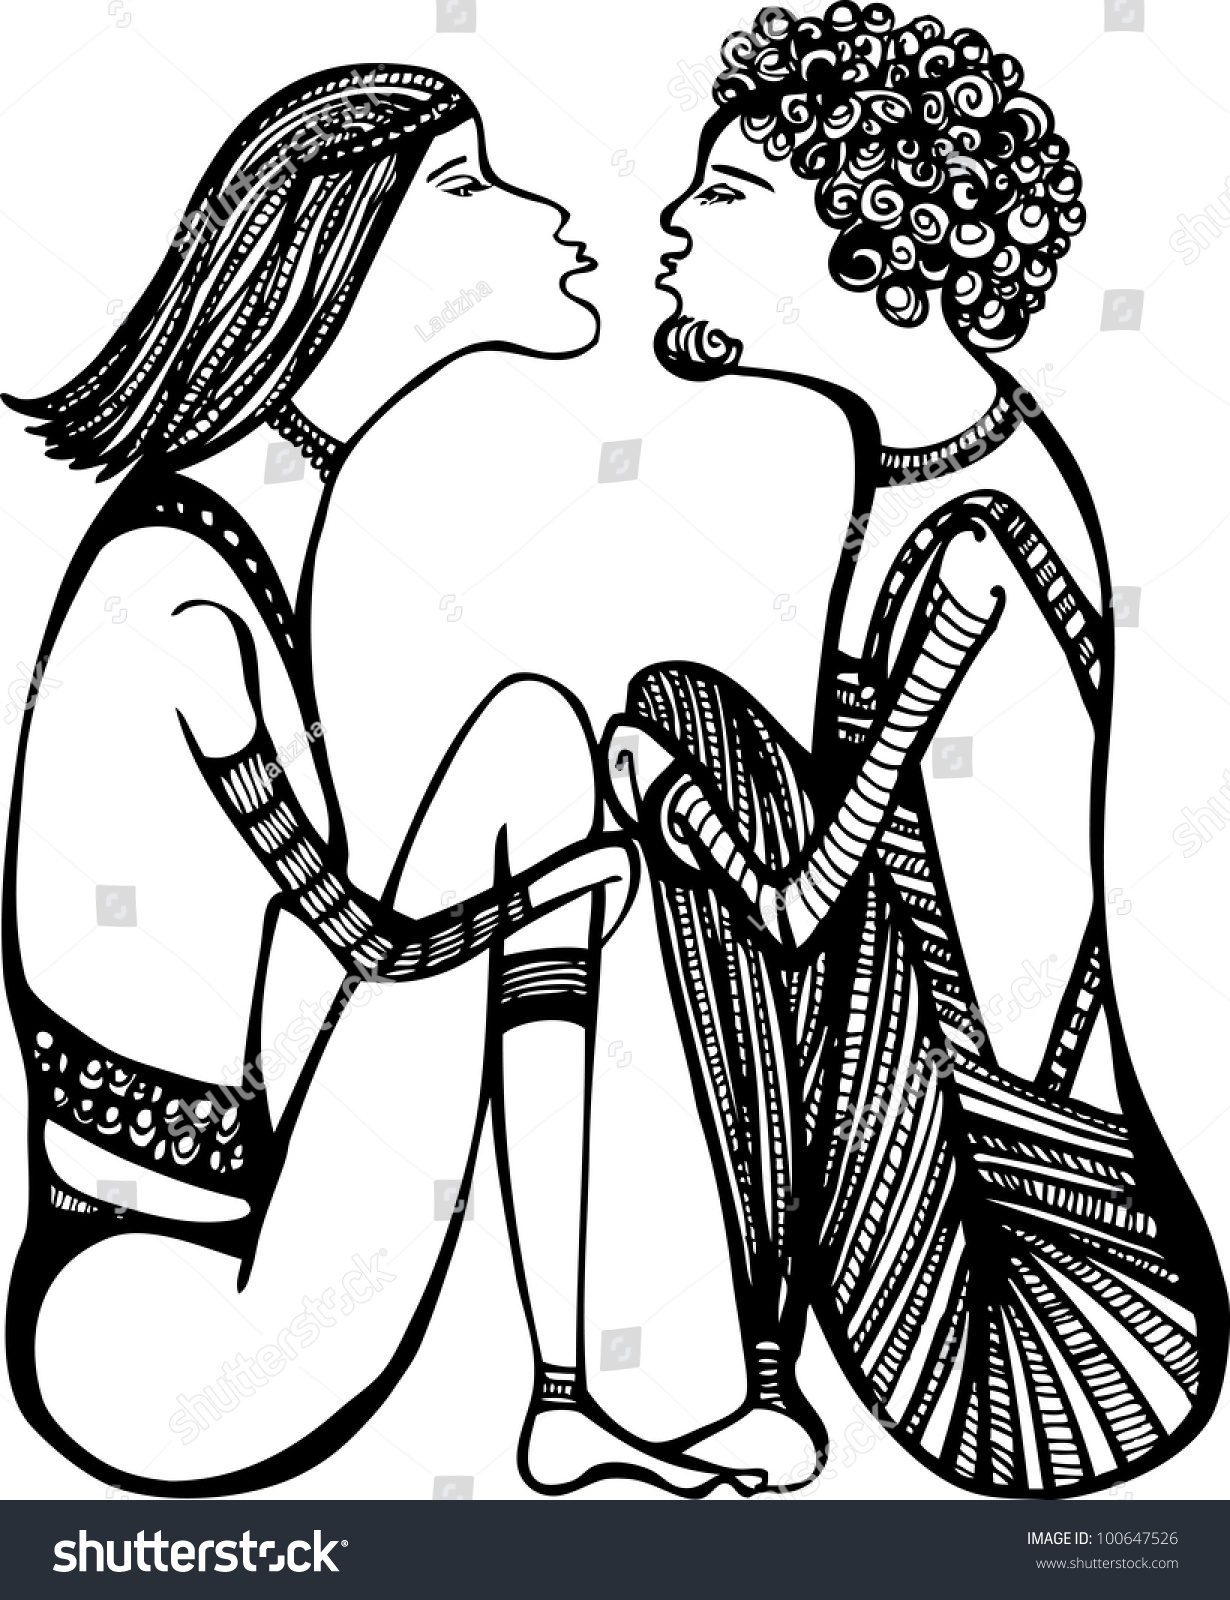 Sketch of a love couple ready to kiss black and white illustration